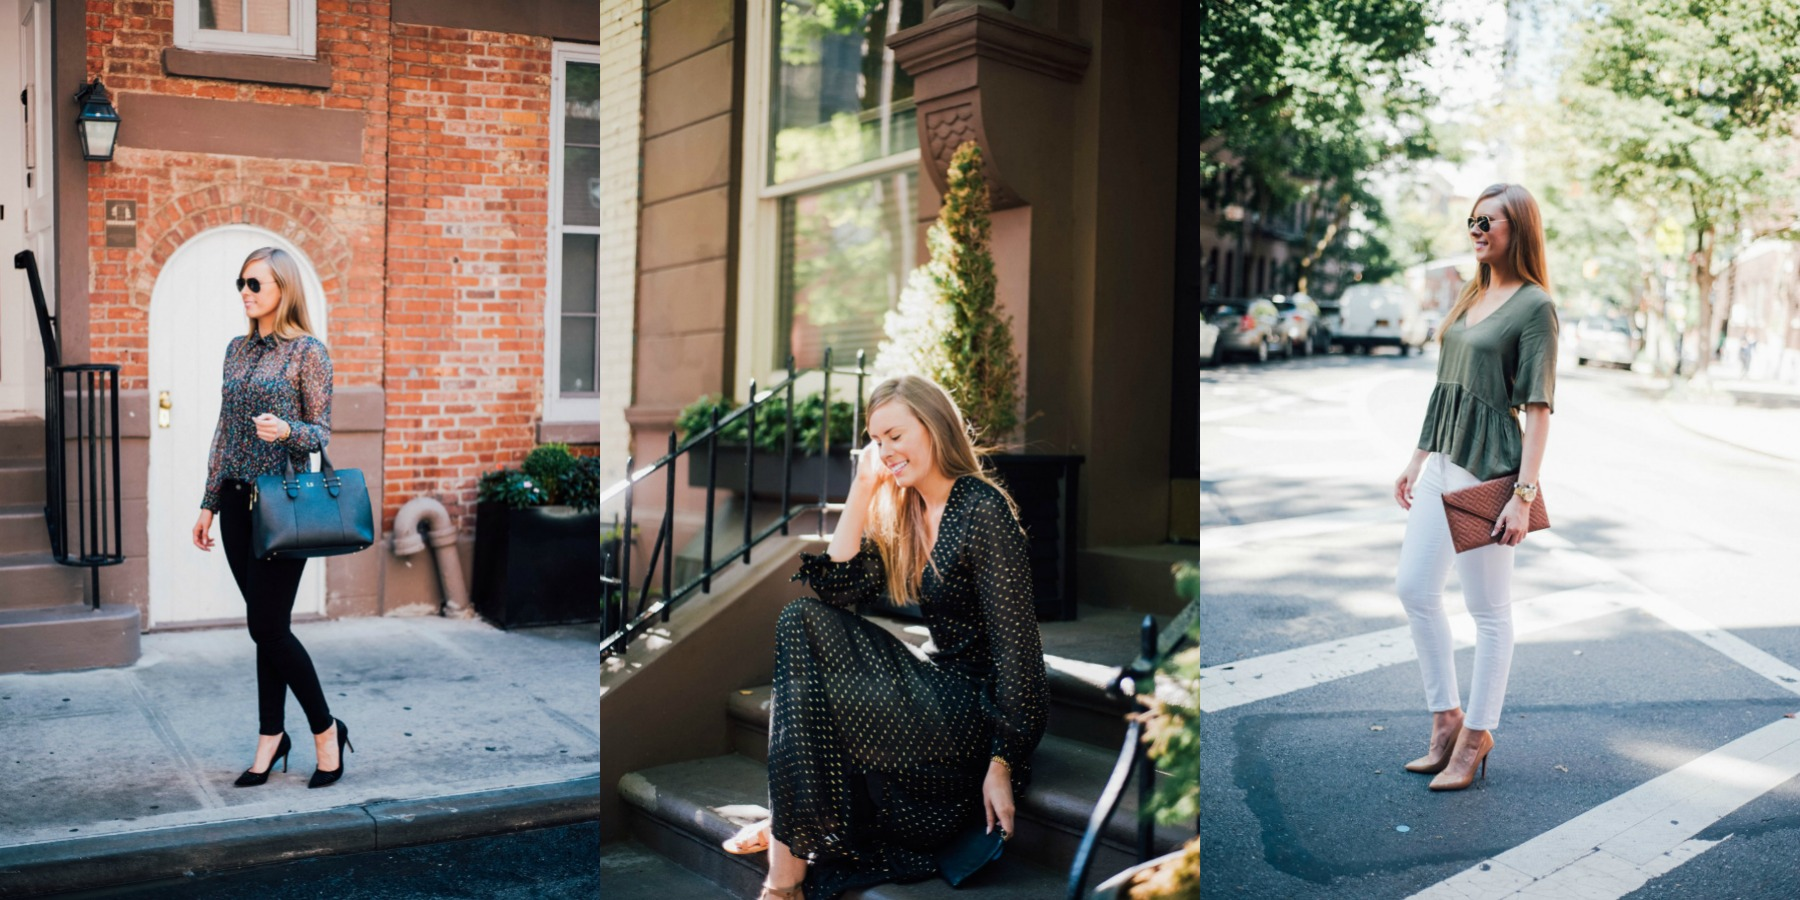 3 polished outfit ideas in the west village new york fashion blogger - Style Sessions: 3 Polished Outfit Ideas - Vote For Your Fave featured by popular international style blogger, Style Elixir